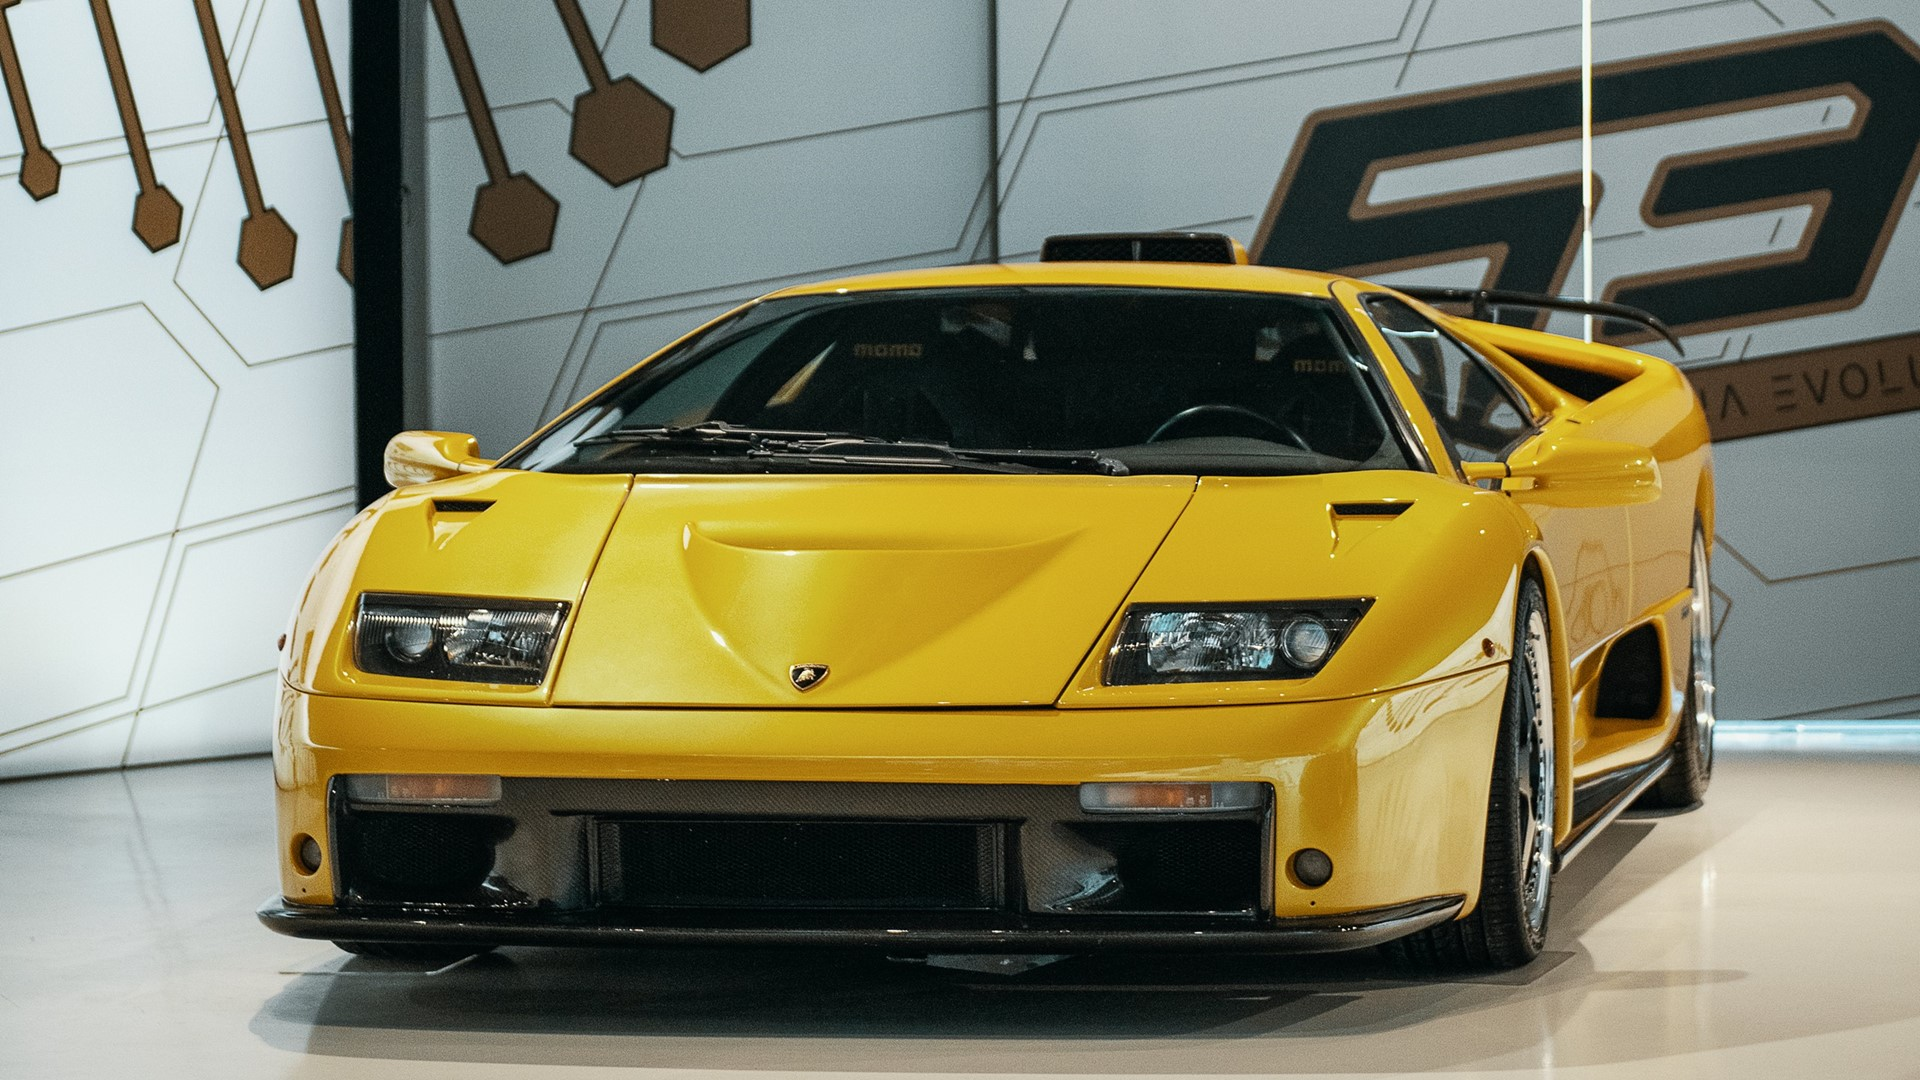 The Lamborghini Museum reopens its doors to the public The new Sián Roadster on display until 12 July - Image 5